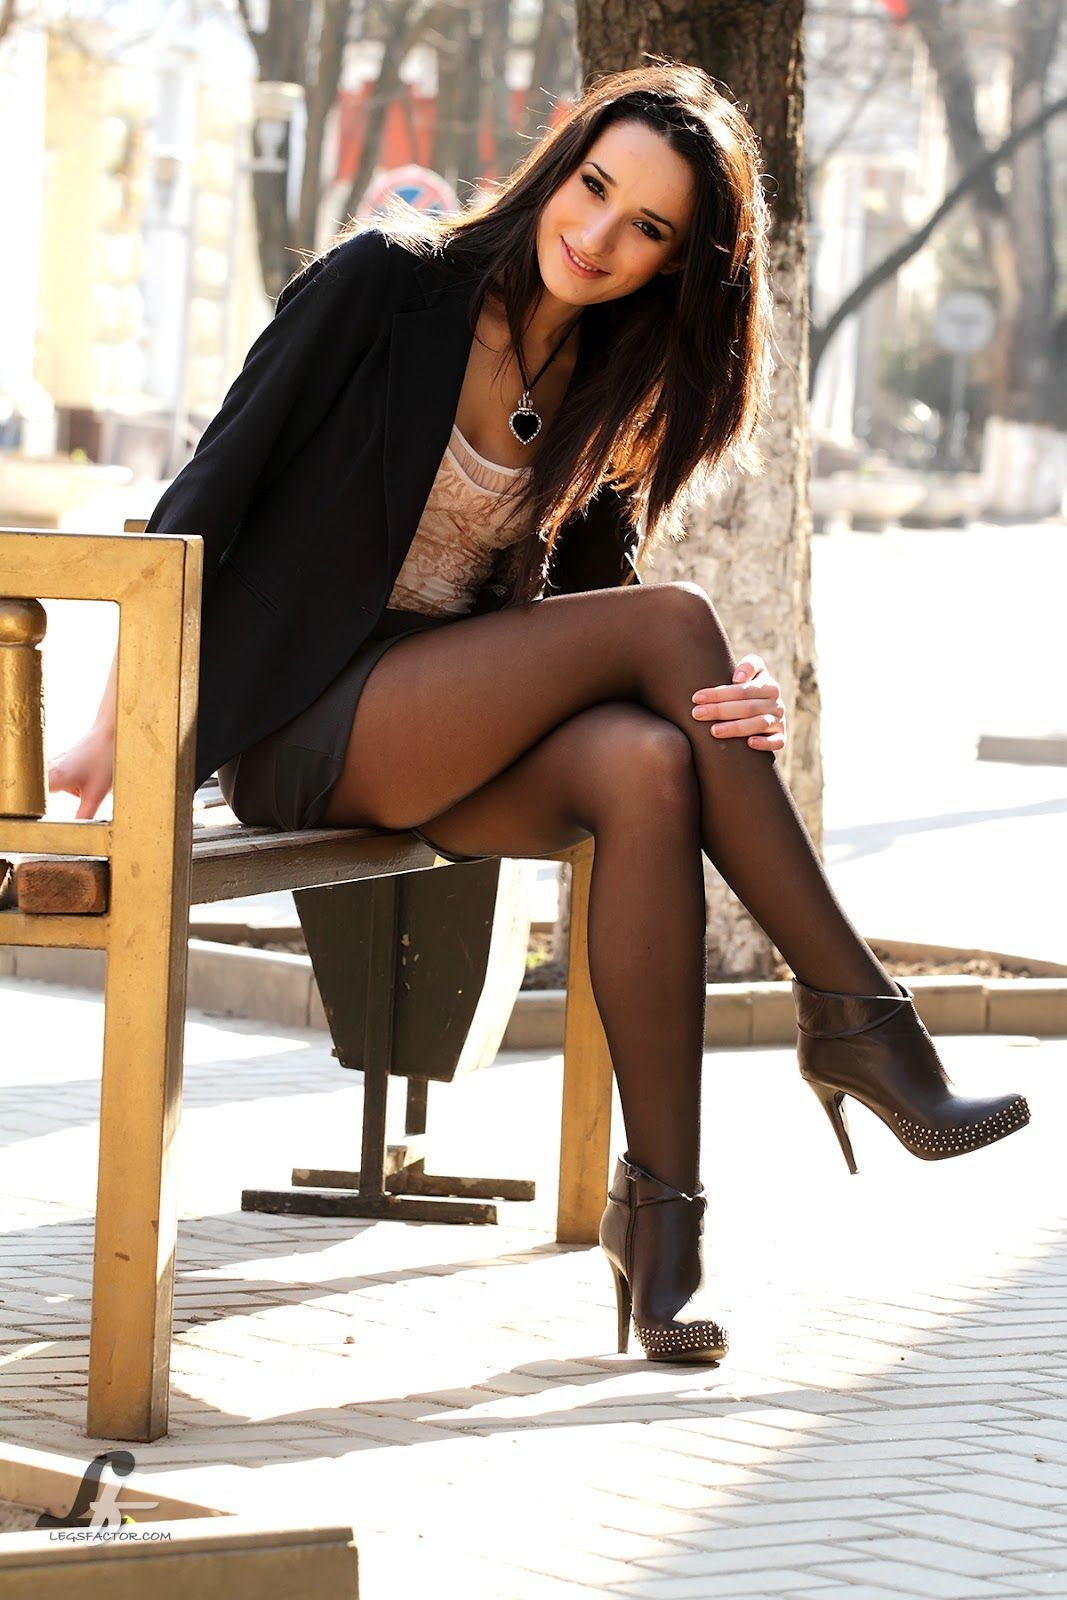 Teen glamour babe Melena A modeling in over the knee socks and high heels № 1684940 бесплатно